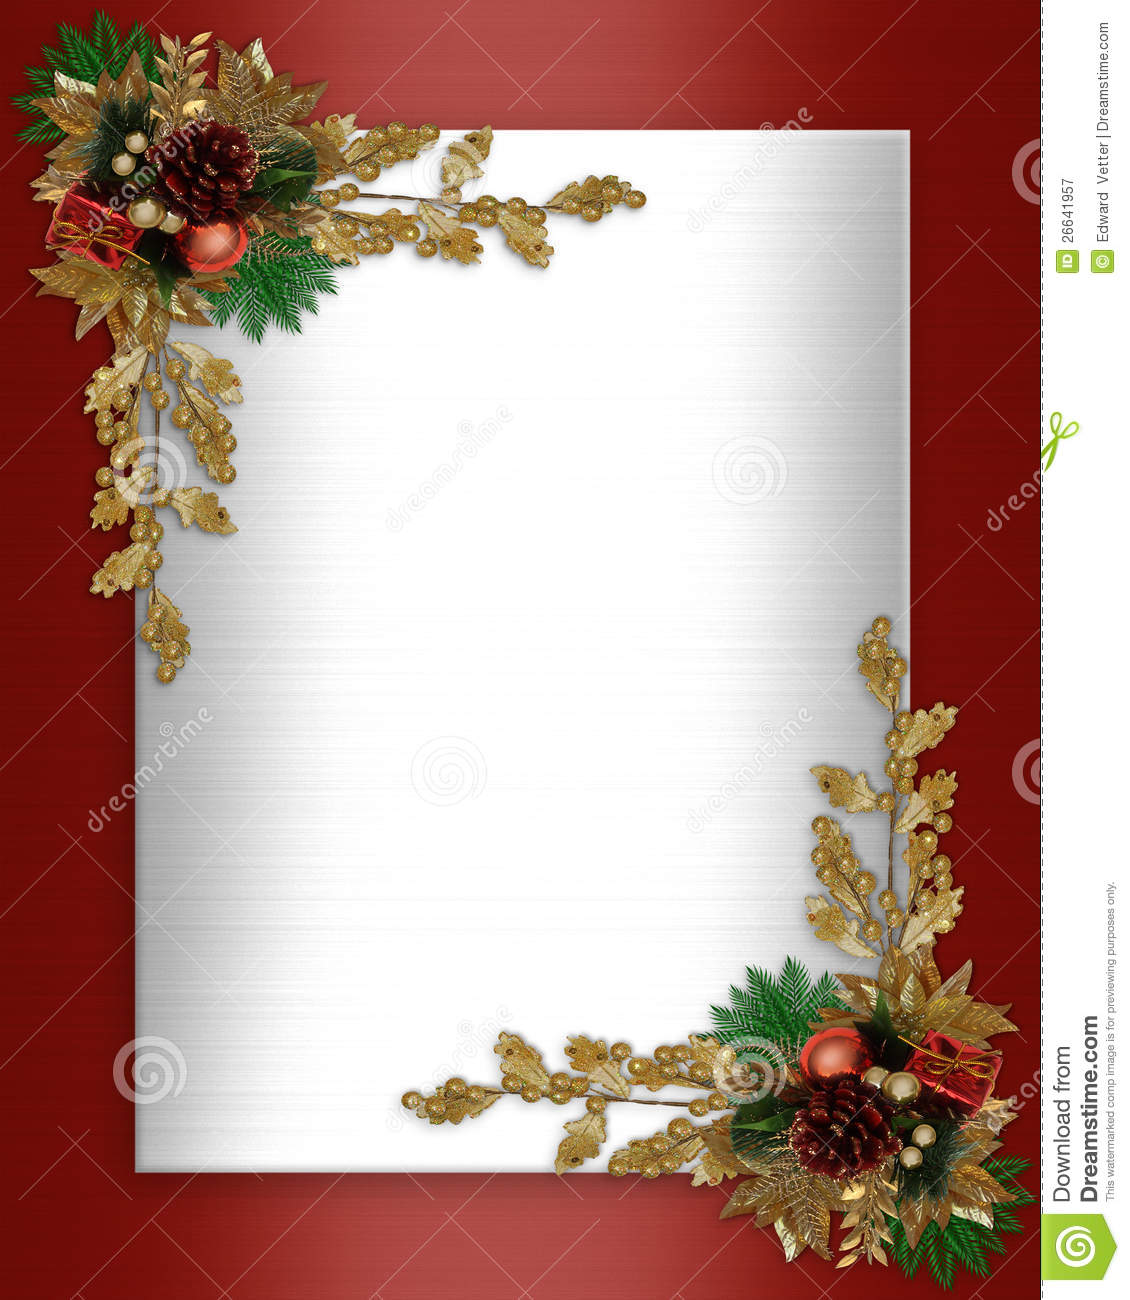 christmas border elegant stock illustration illustration of colors